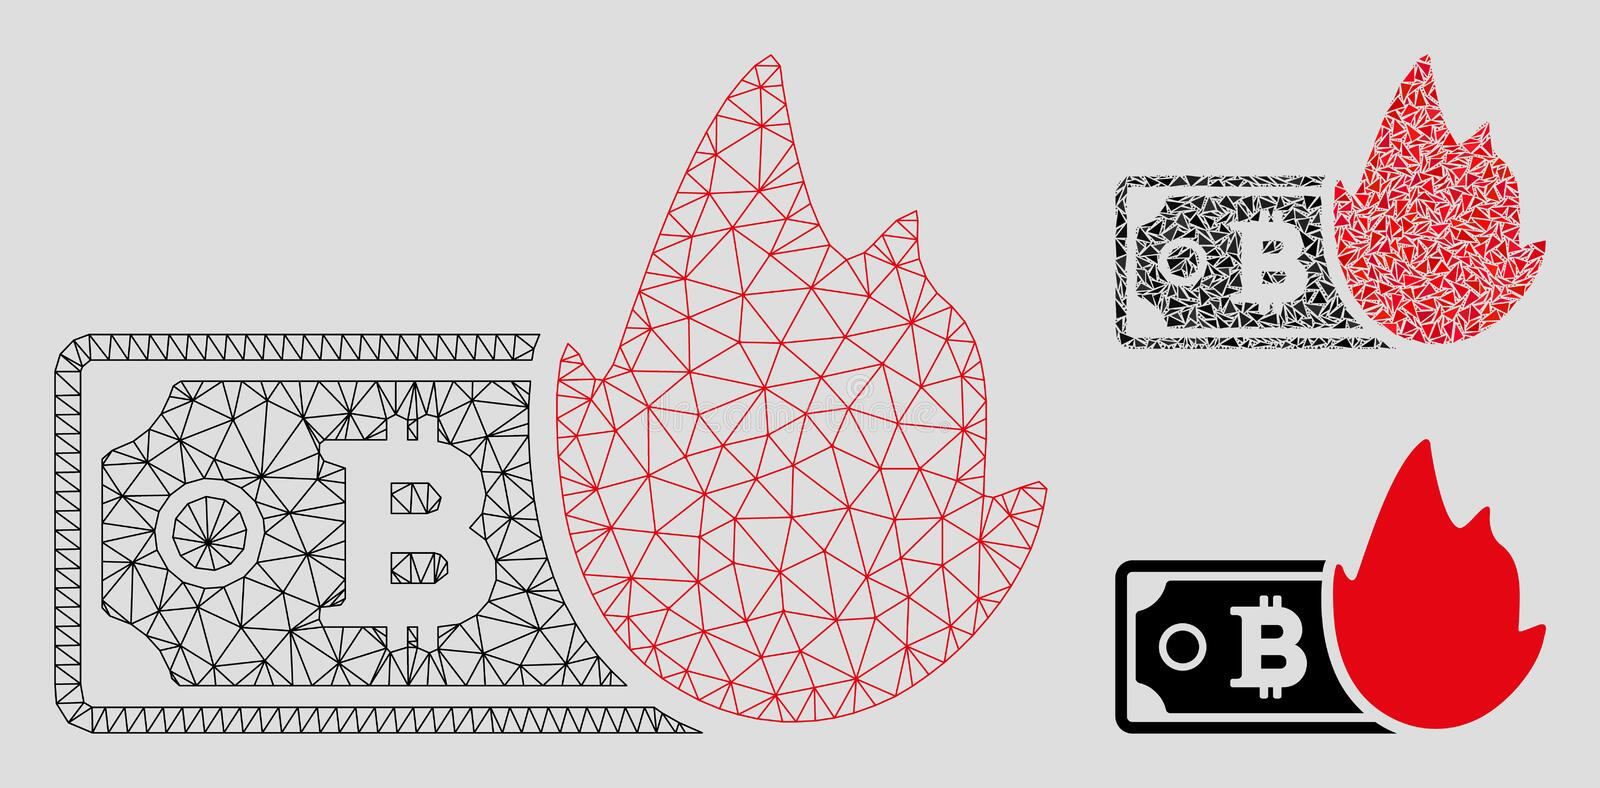 Fired Bitcoin Banknote Vector Mesh 2D Model and Triangle Mosaic Icon. Mesh fired bitcoin banknote model with triangle mosaic icon. Wire frame triangular mesh of stock illustration